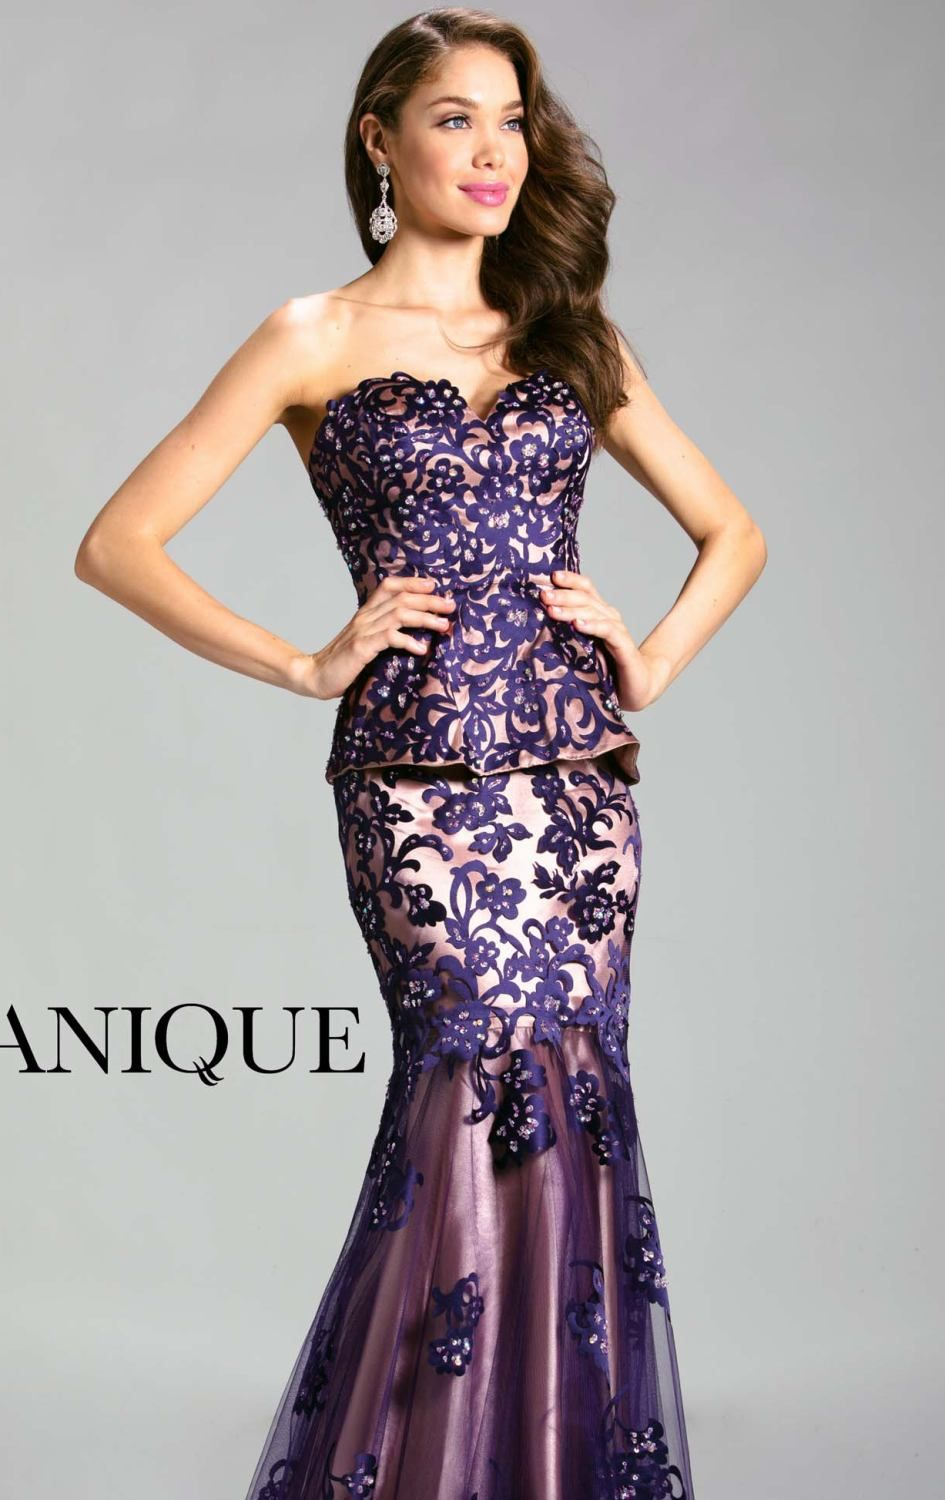 Janique by janique gorg gowns pinterest strapless